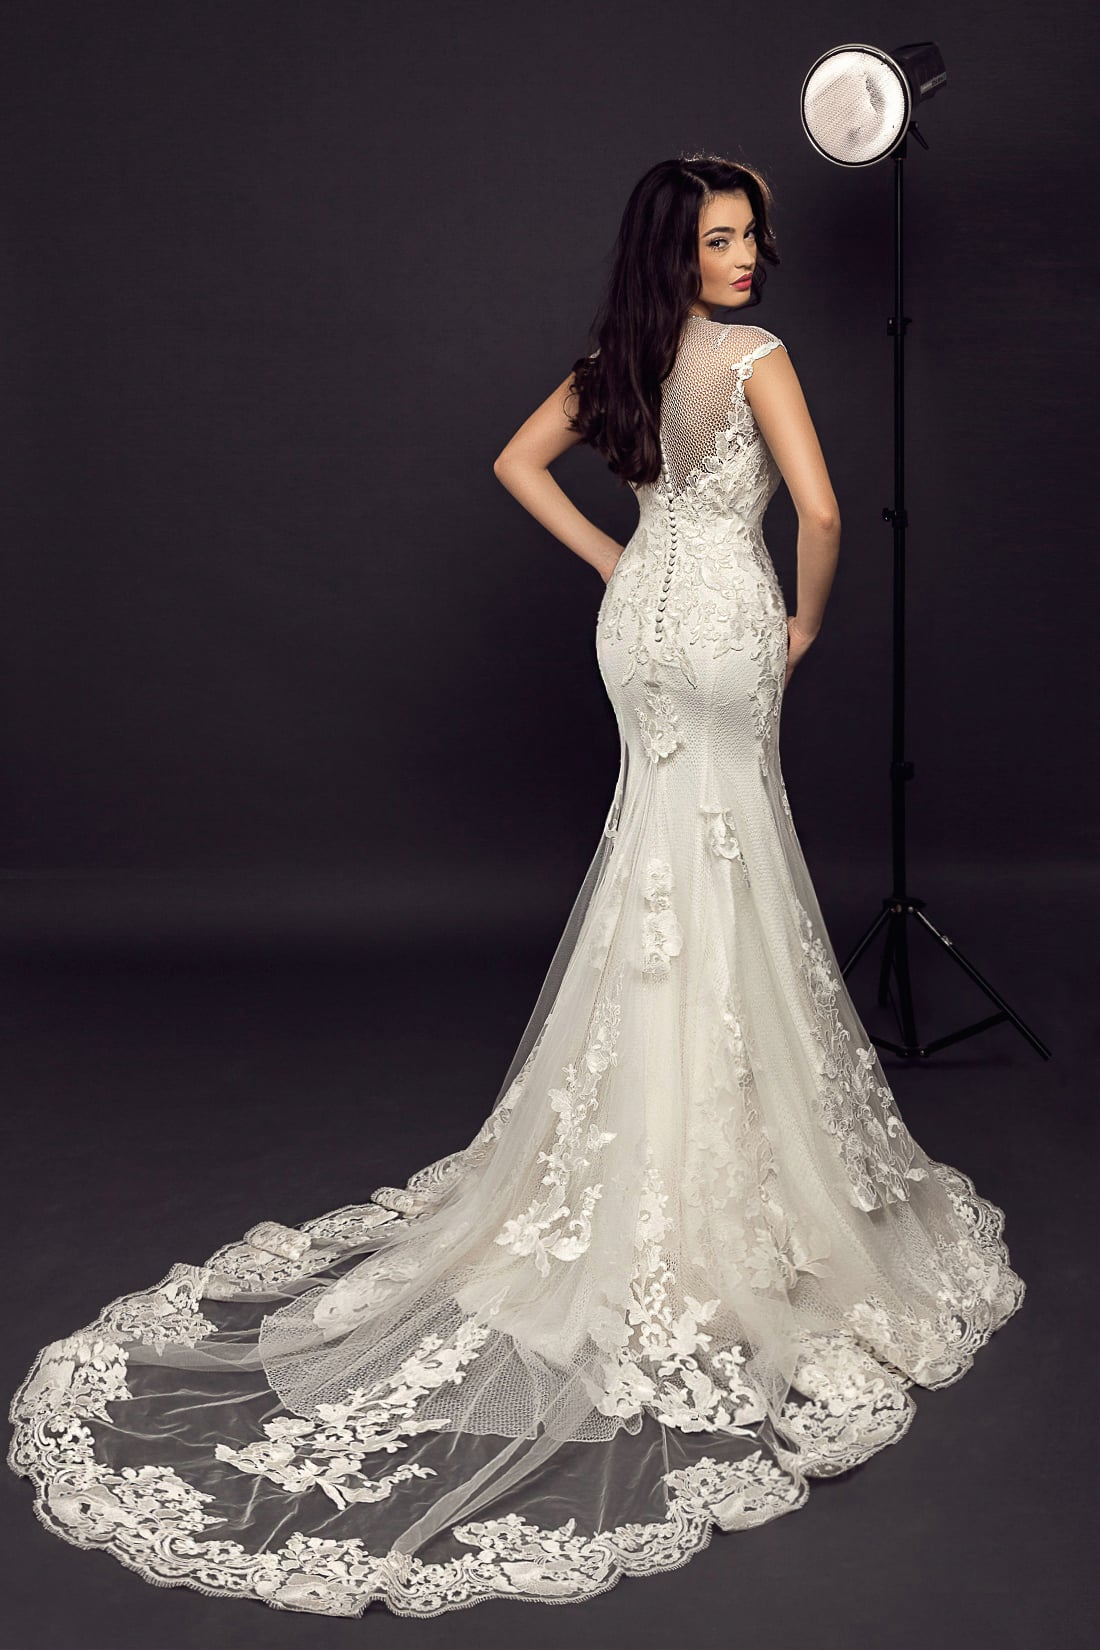 Palmira Model - Colectia Dreams - Adora Sposa